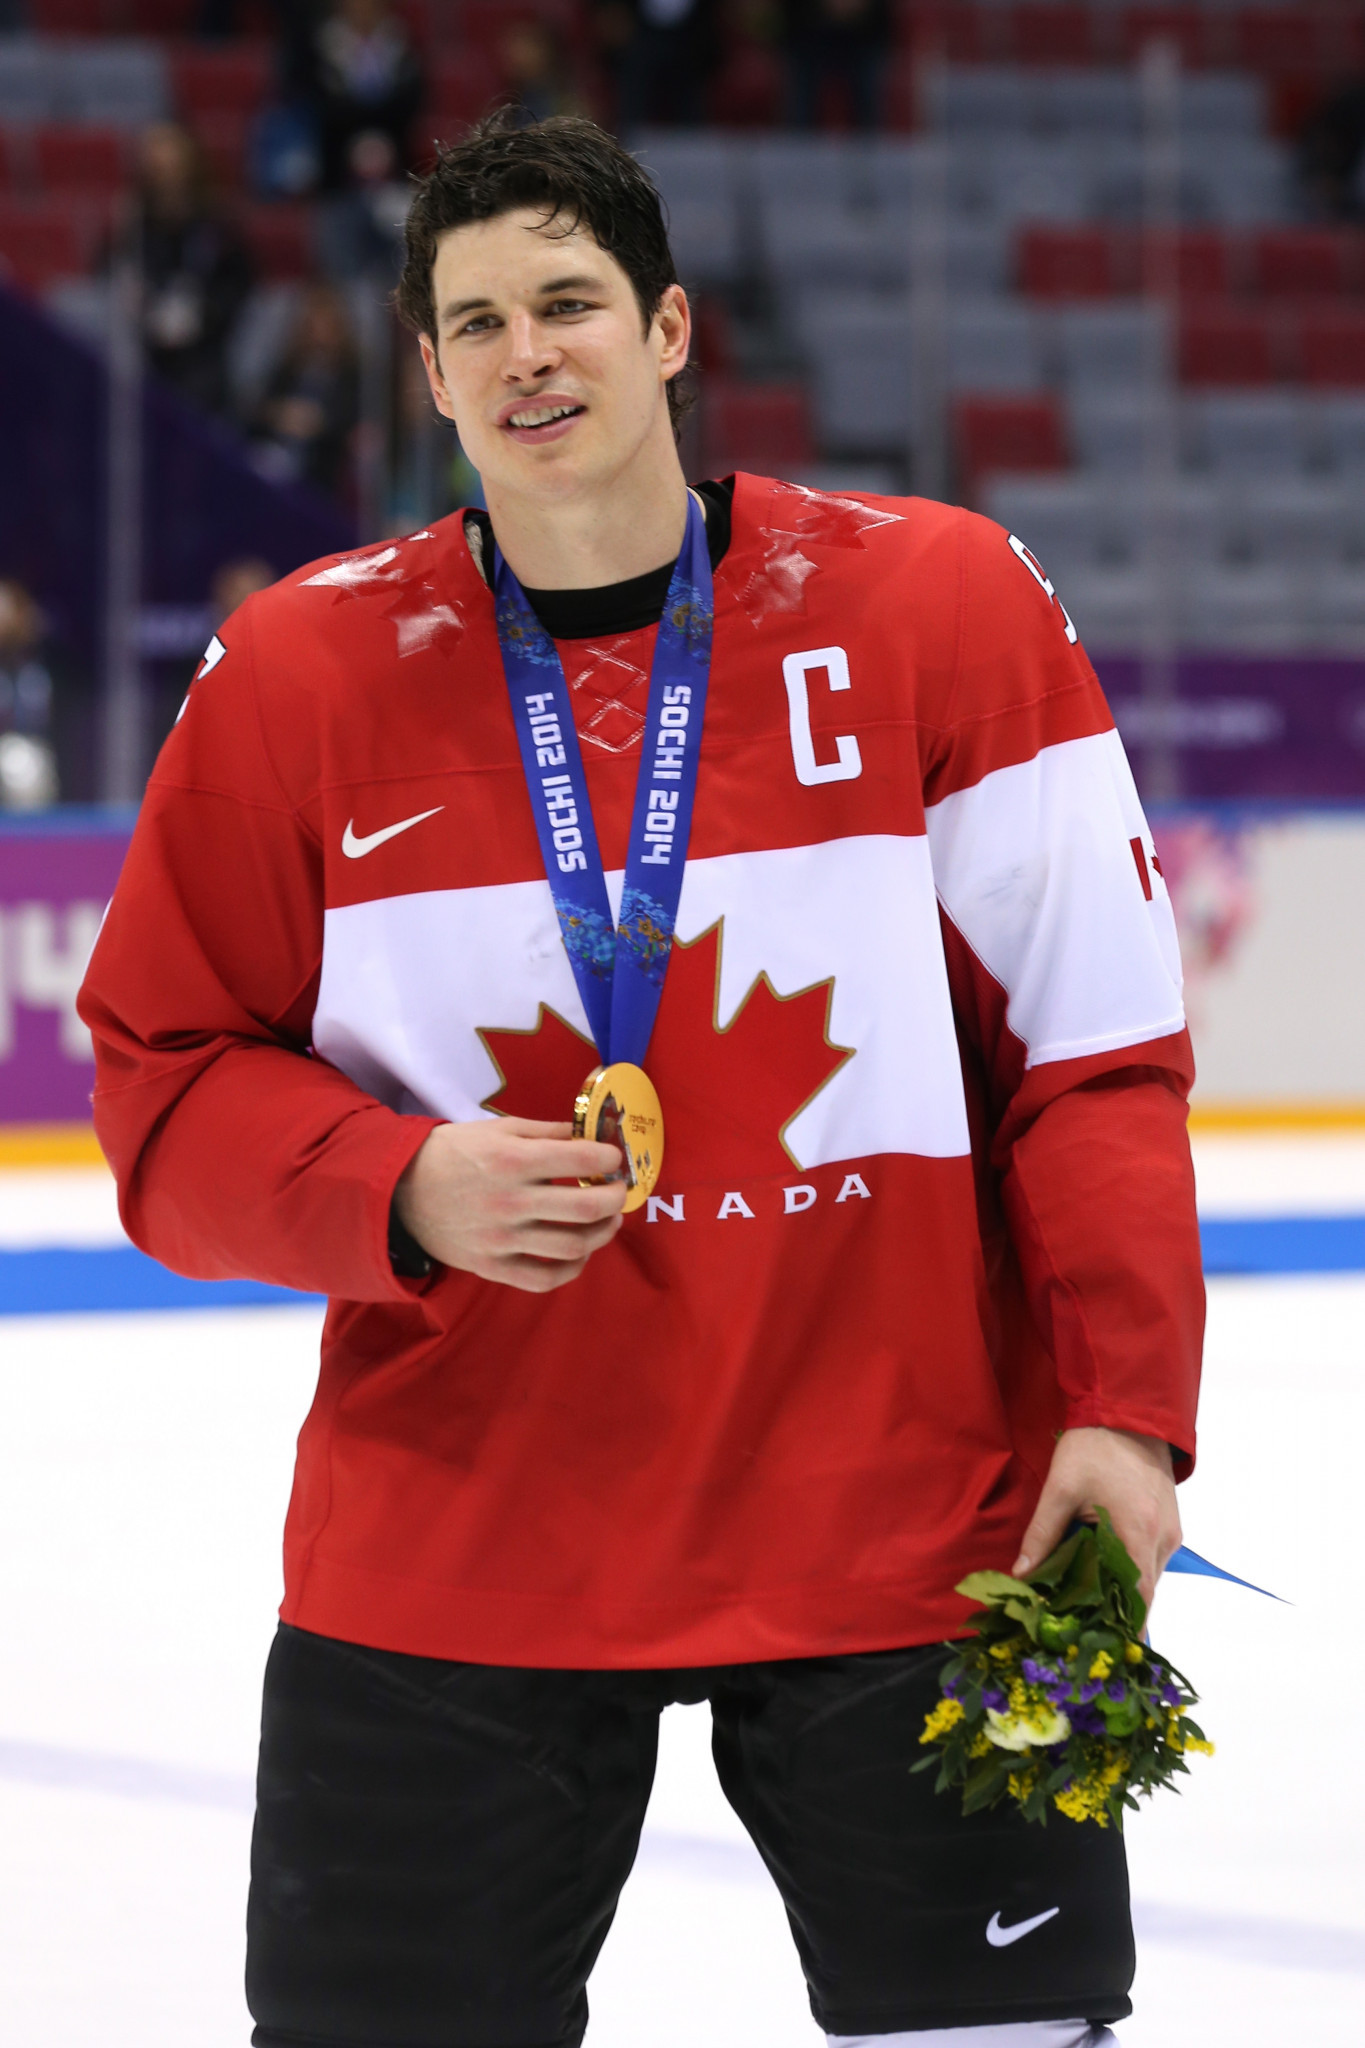 NHL stars Crosby, McDavid and Pietrangelo selected for Canadian men's ice hockey team for Beijing 2022